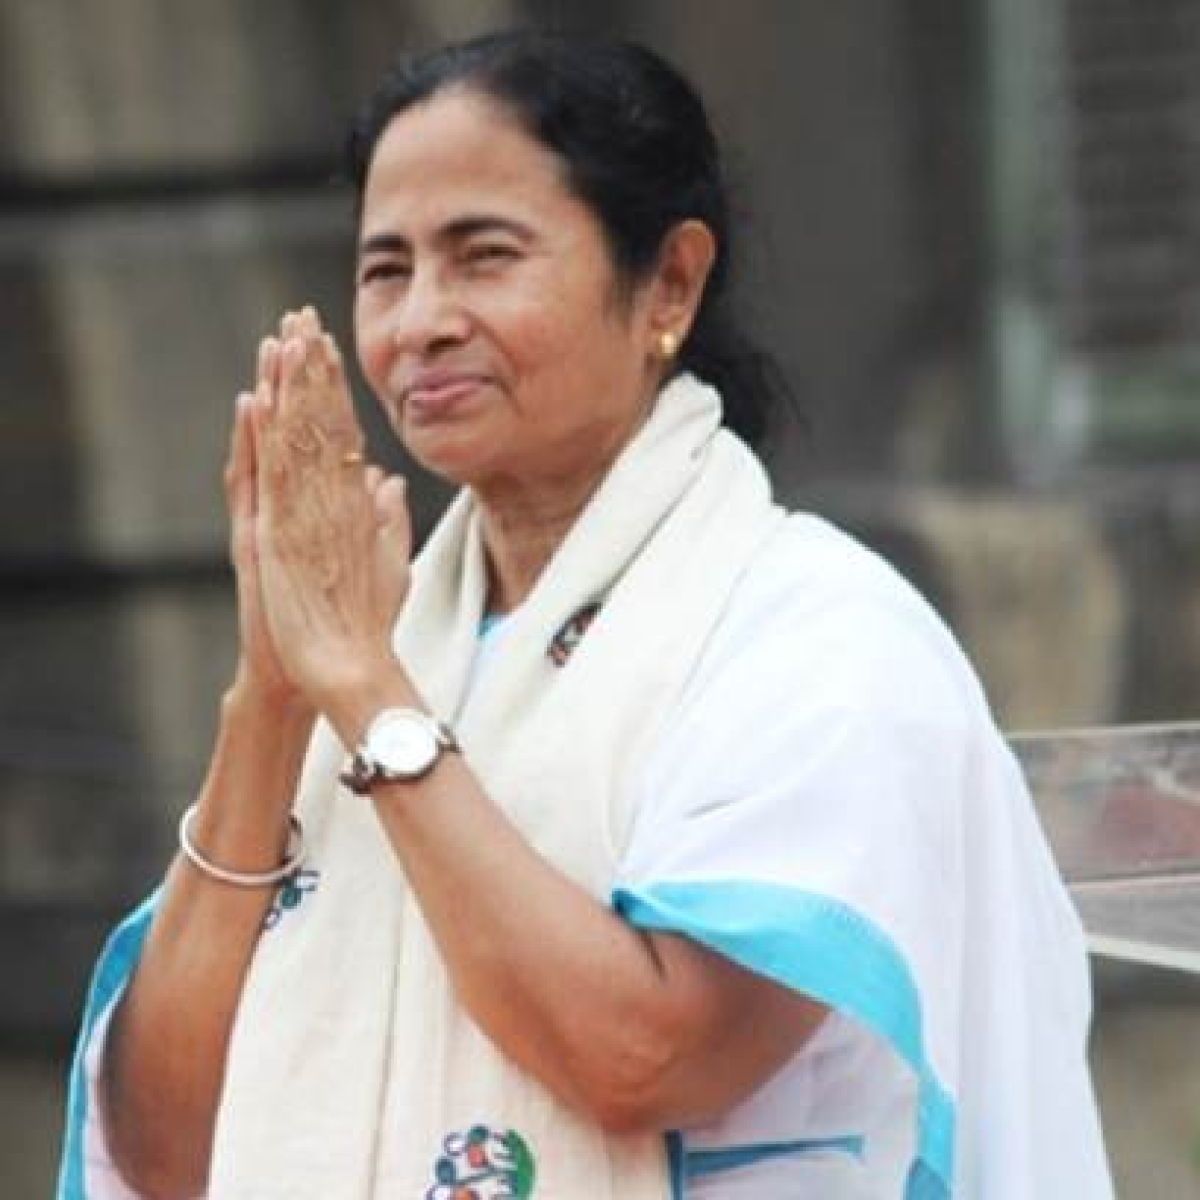 Chandrayaan-2 launch an attempt to divert attention from 'economic disaster': Mamata Banerjee